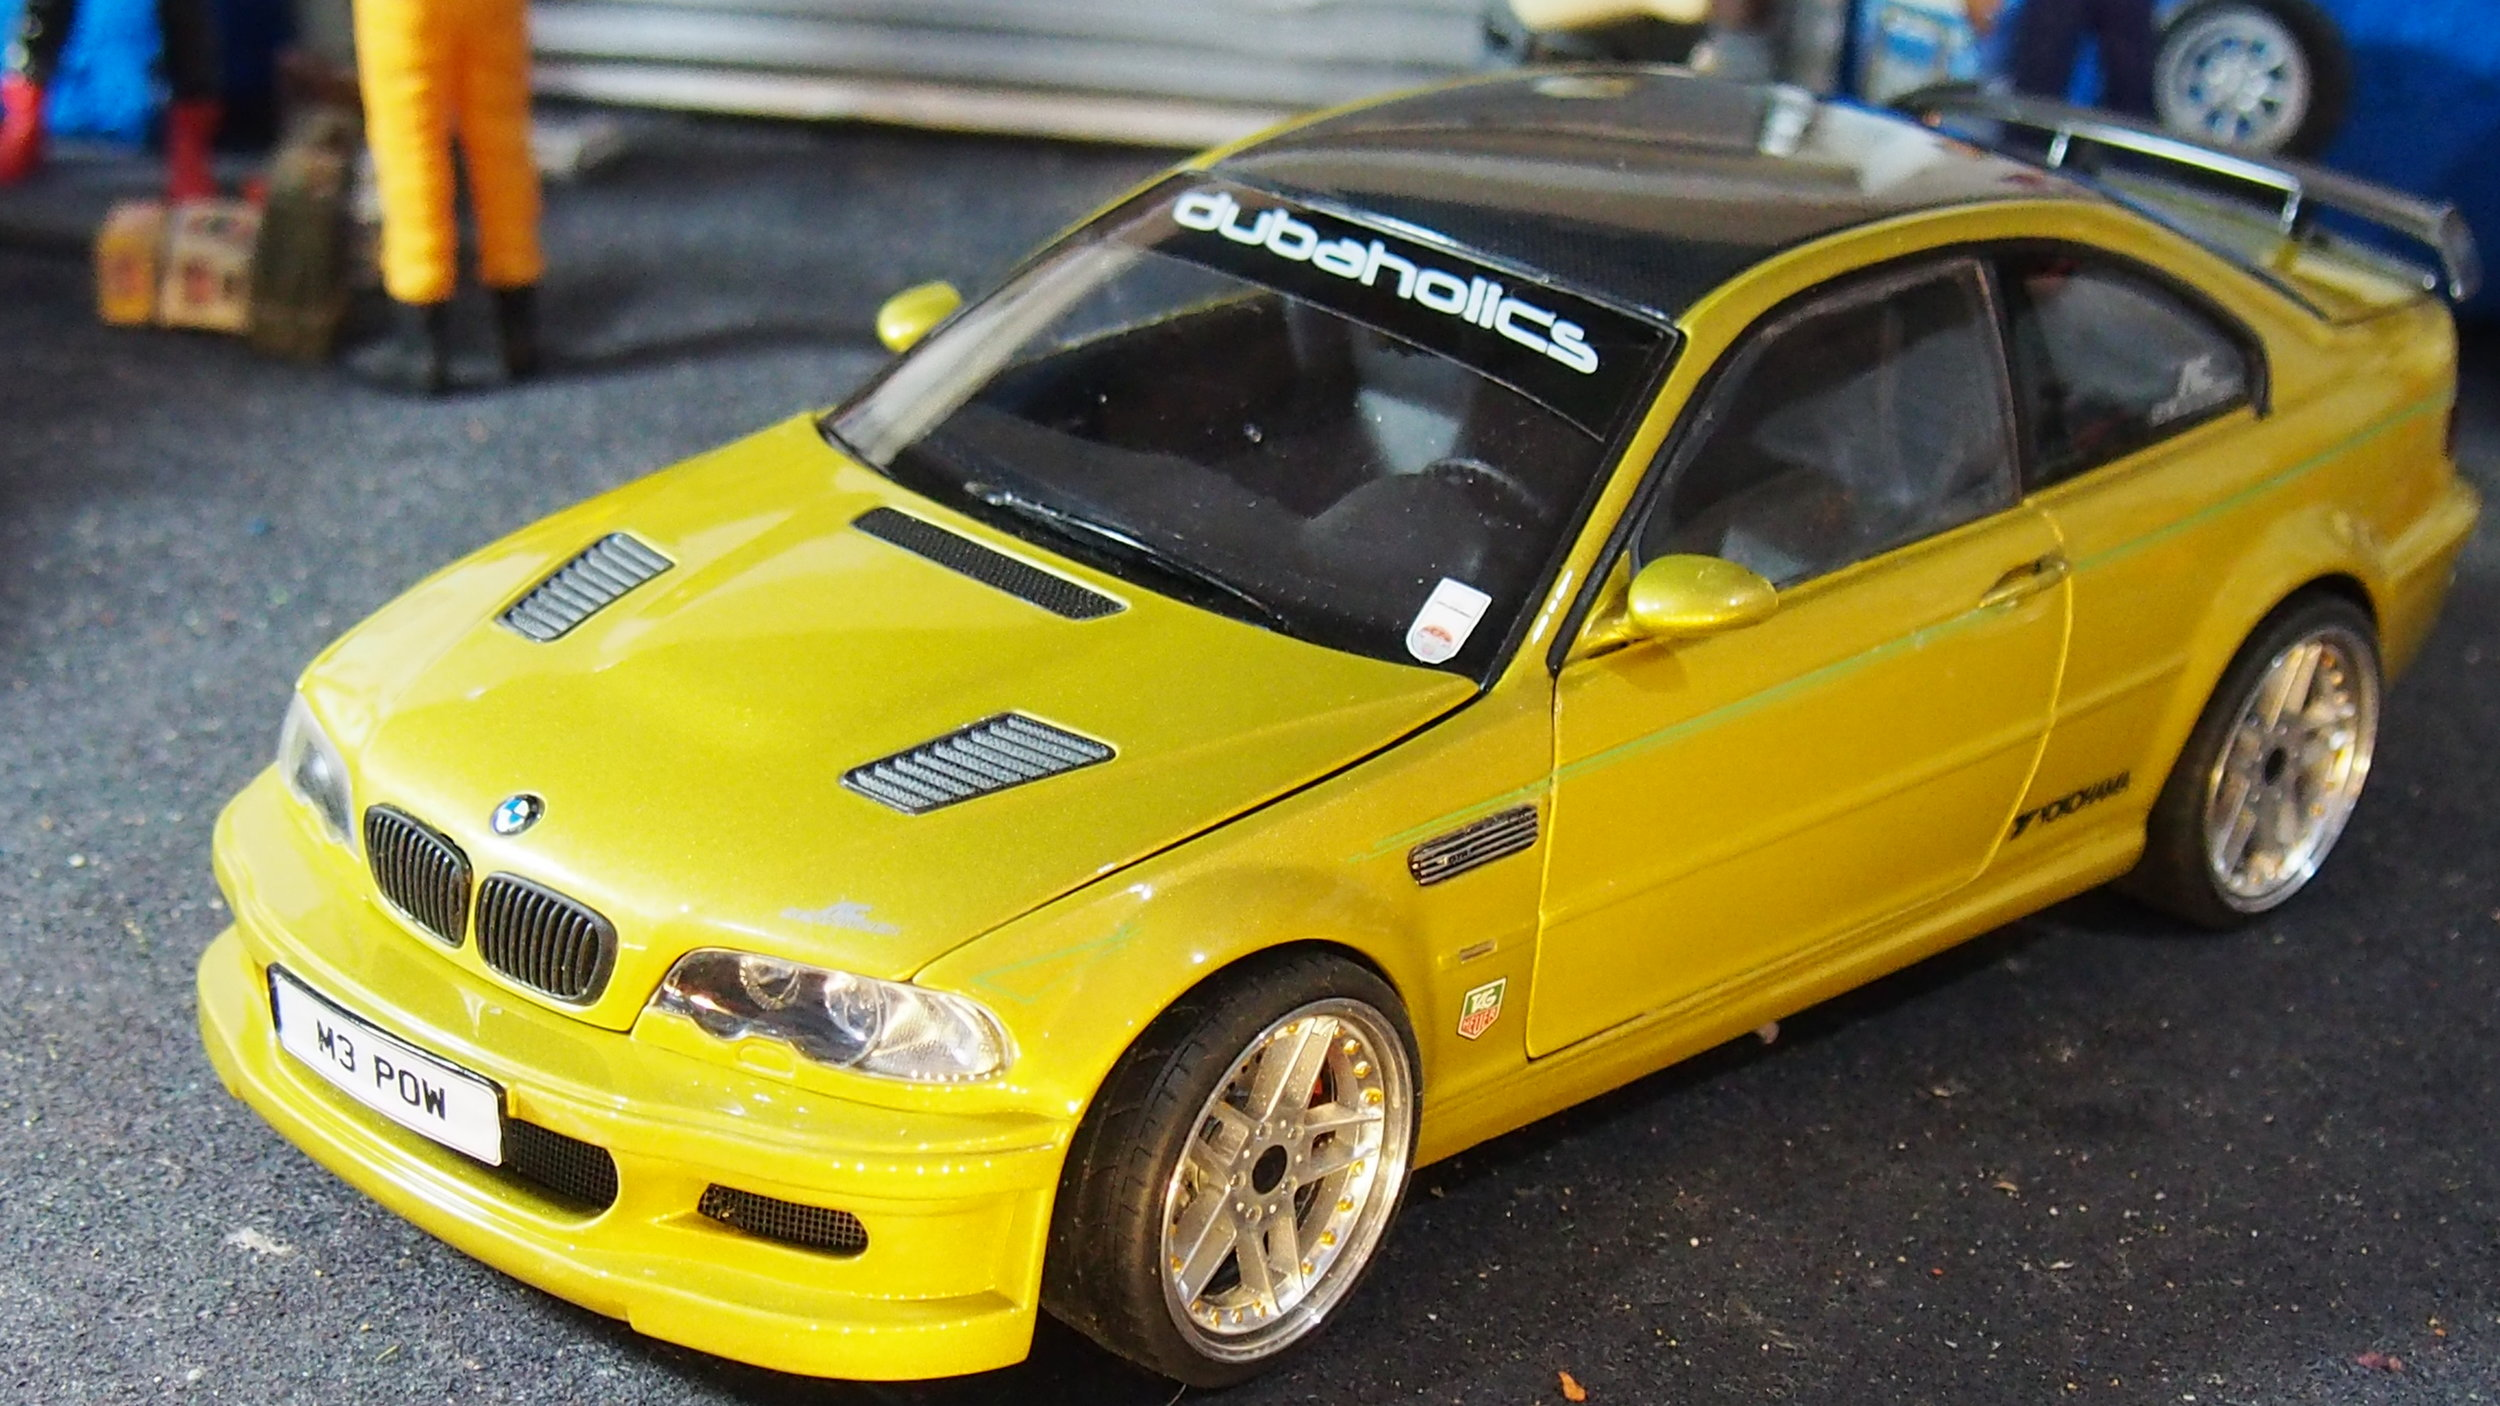 Bmw M3 Gtr Ac Schintzer Code 3 By Kyosho Boxed1 18 Total One Off Modified Tuning Umbau Cs Diecast Tuning